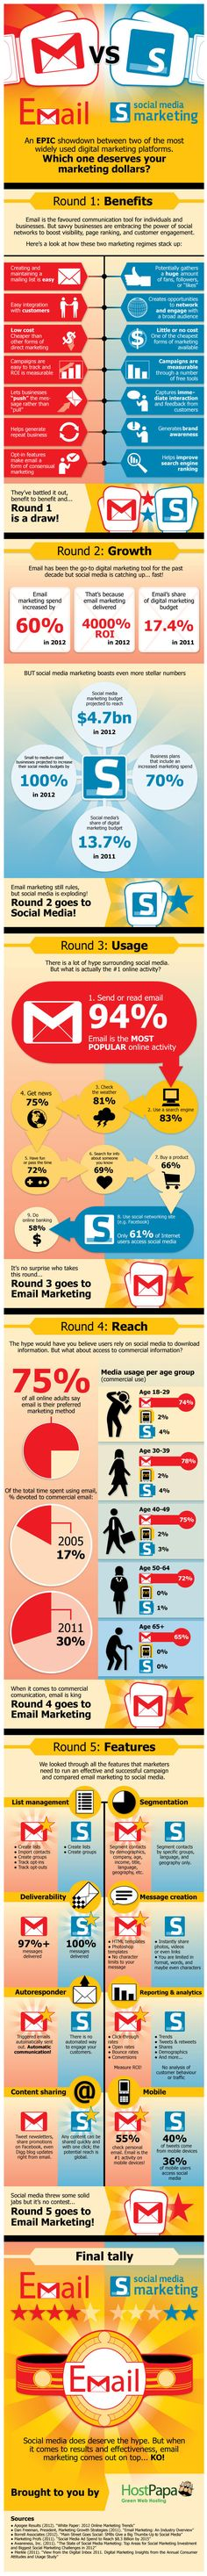 Email marketing vs Social Media Marketing #infografia #infographic #socialmedia #marketing (repinned by @ricardollera)